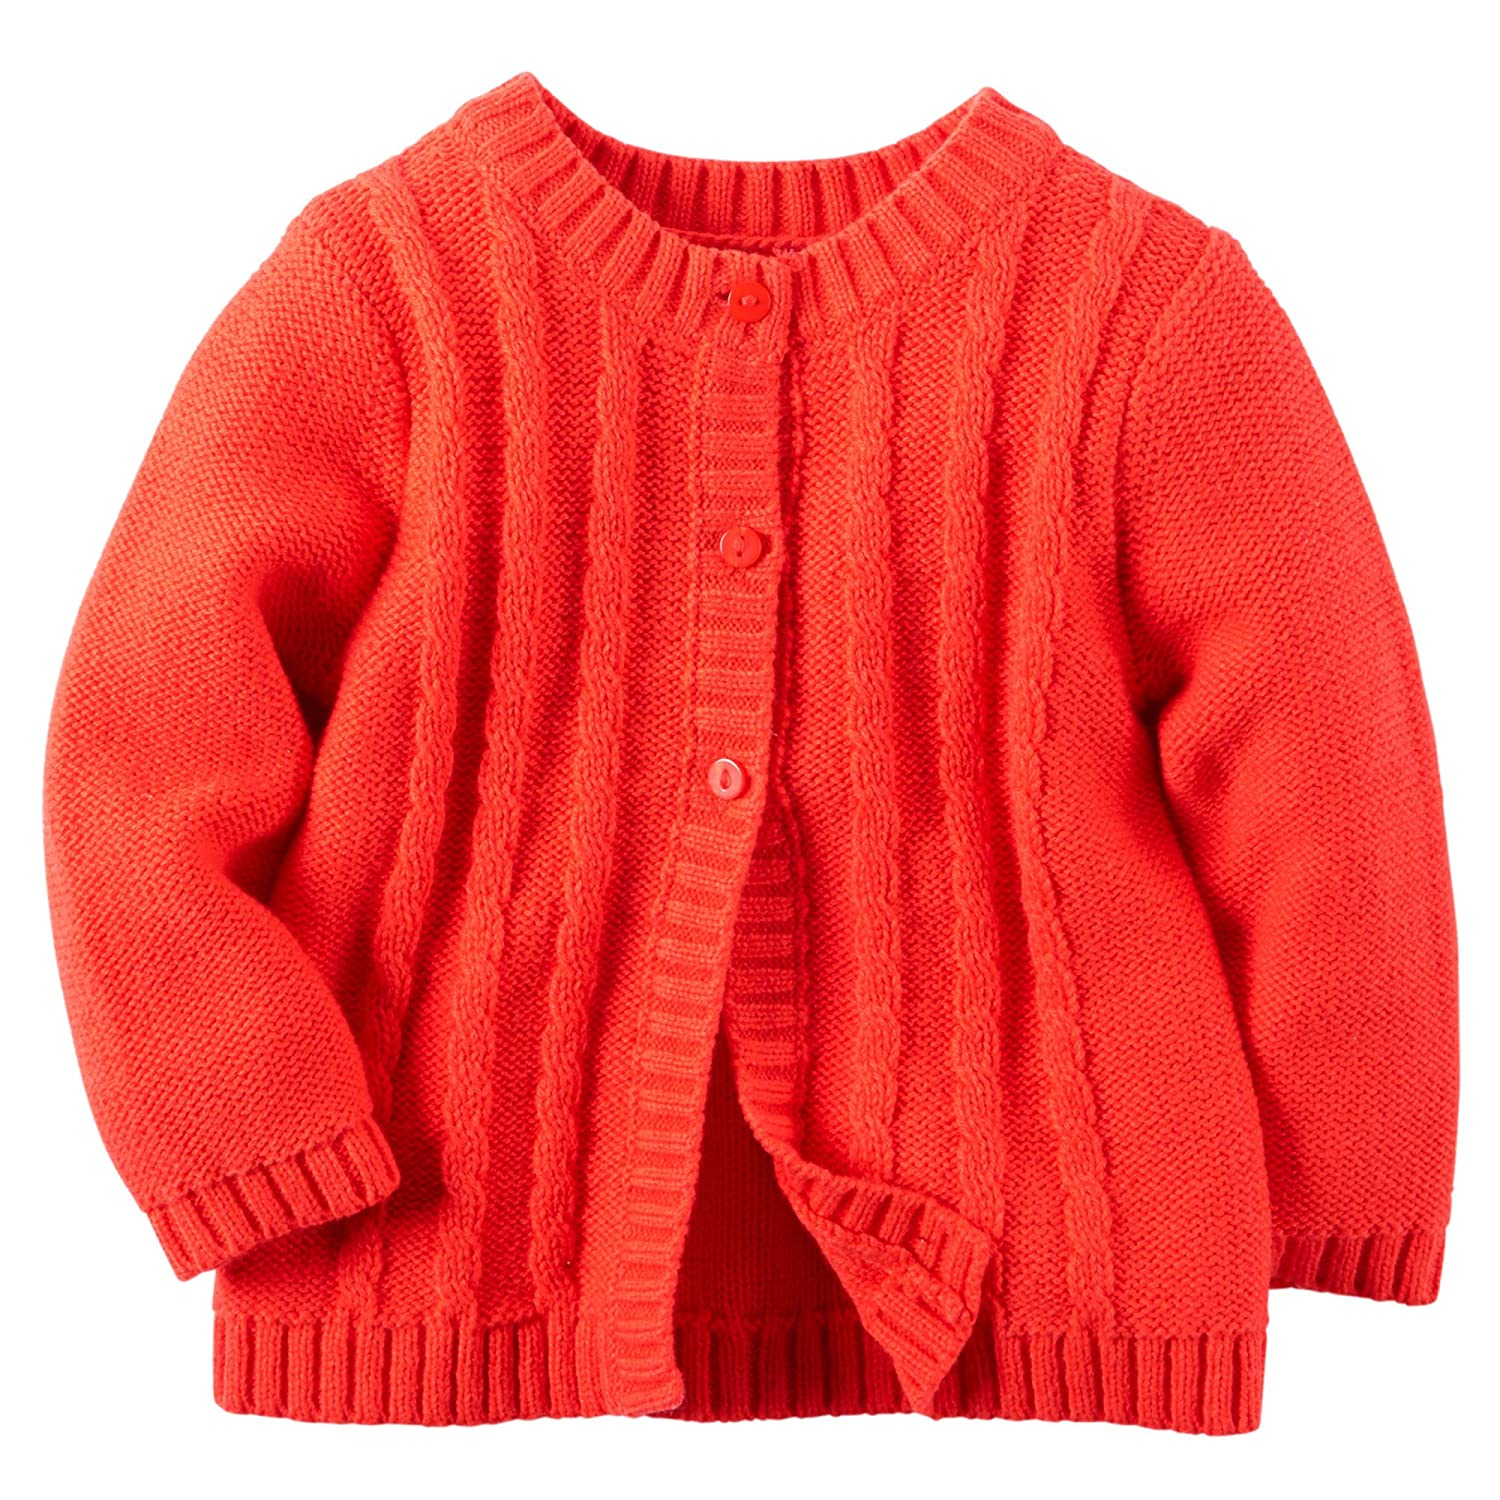 Carters Baby Girls Cable Knit Cardigan 18m, Red